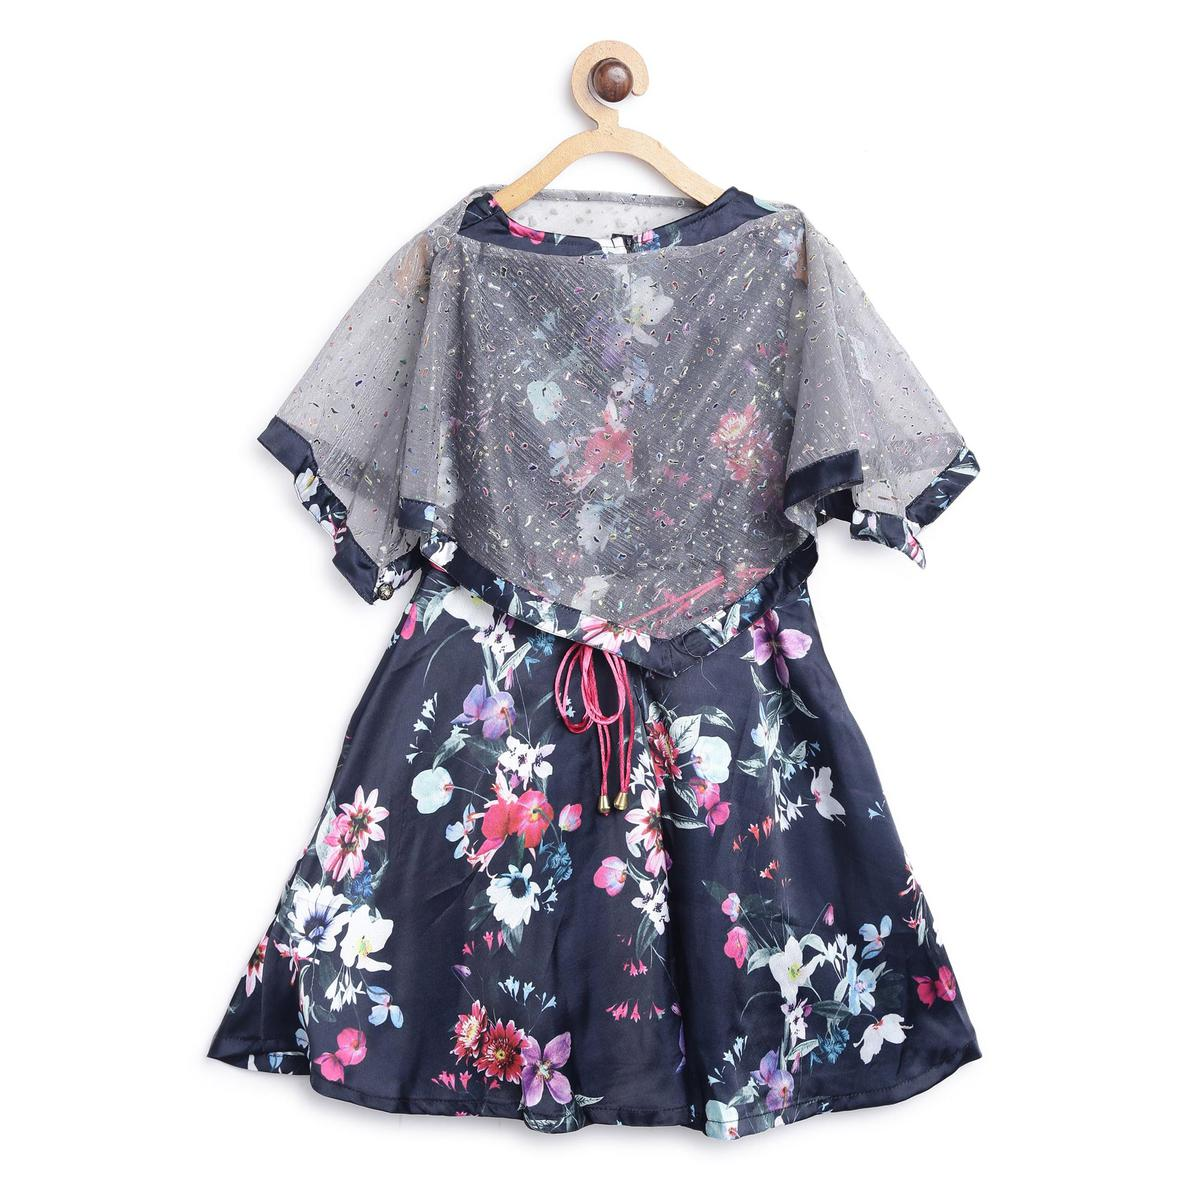 612 League - Navy Blue Colored 2 Pcs Printed Polyester Satin Cape Dress For Girls